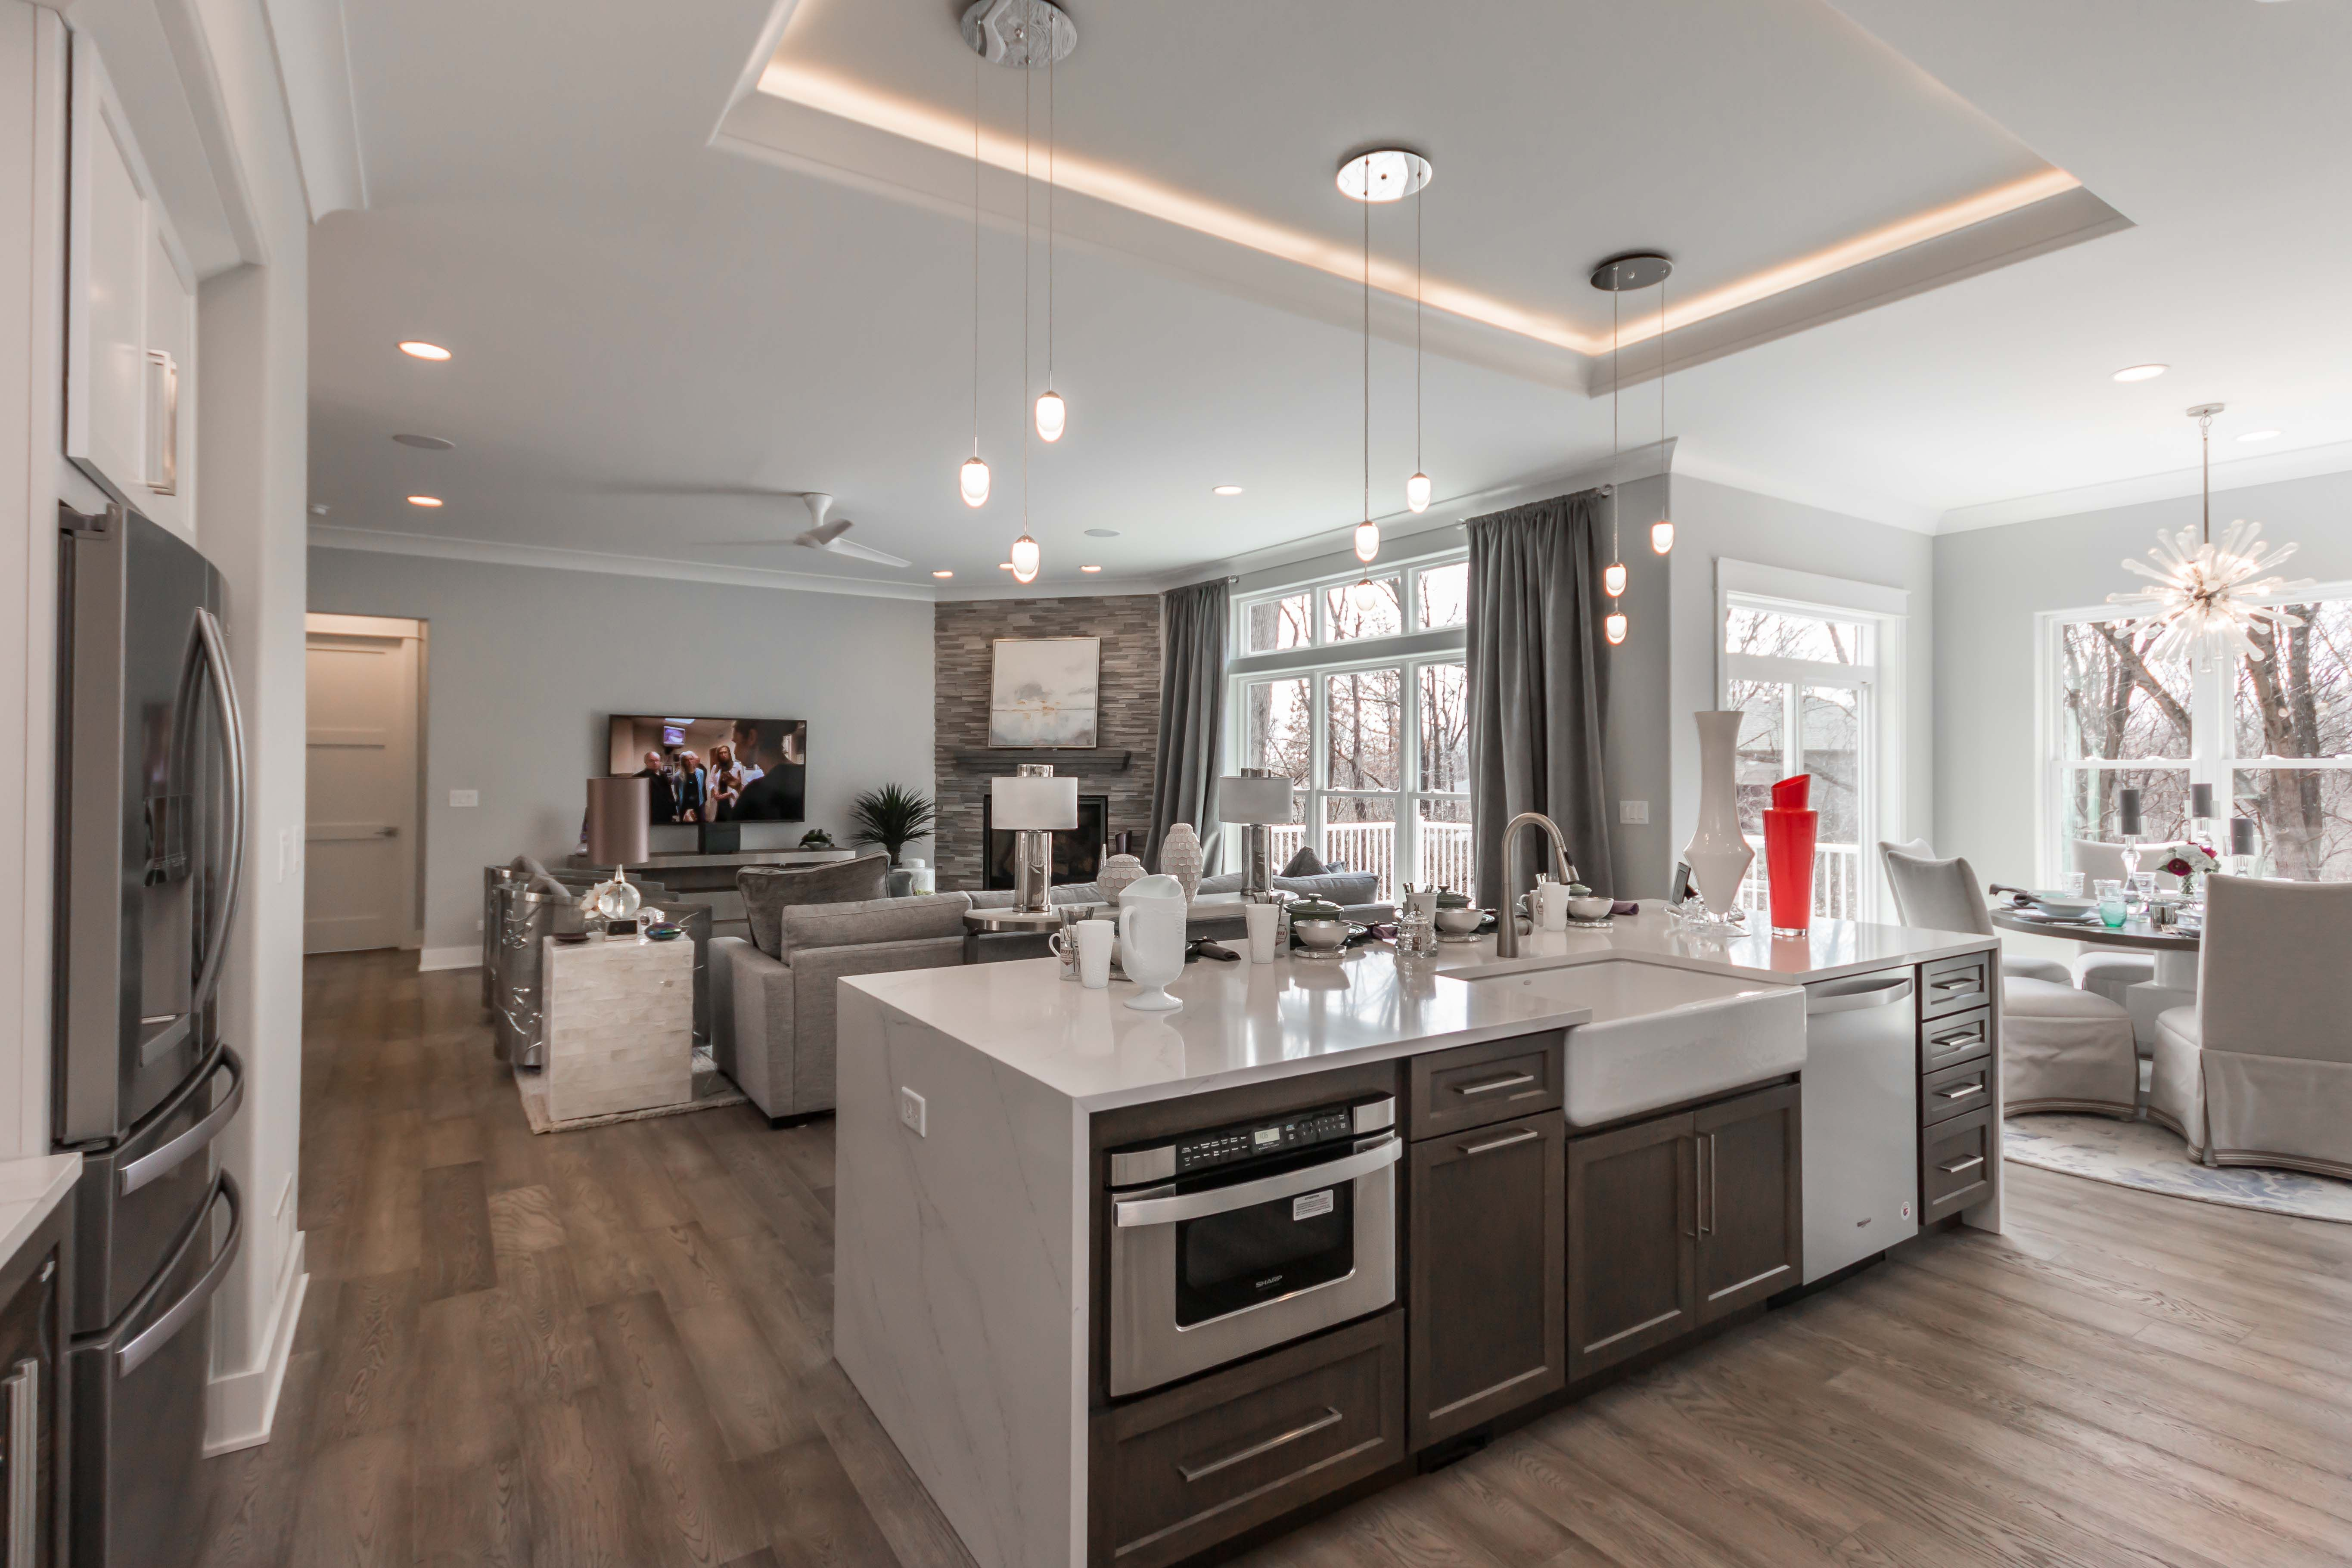 Best Beautiful Kitchen Design In This Open Concept Ranch Home 400 x 300